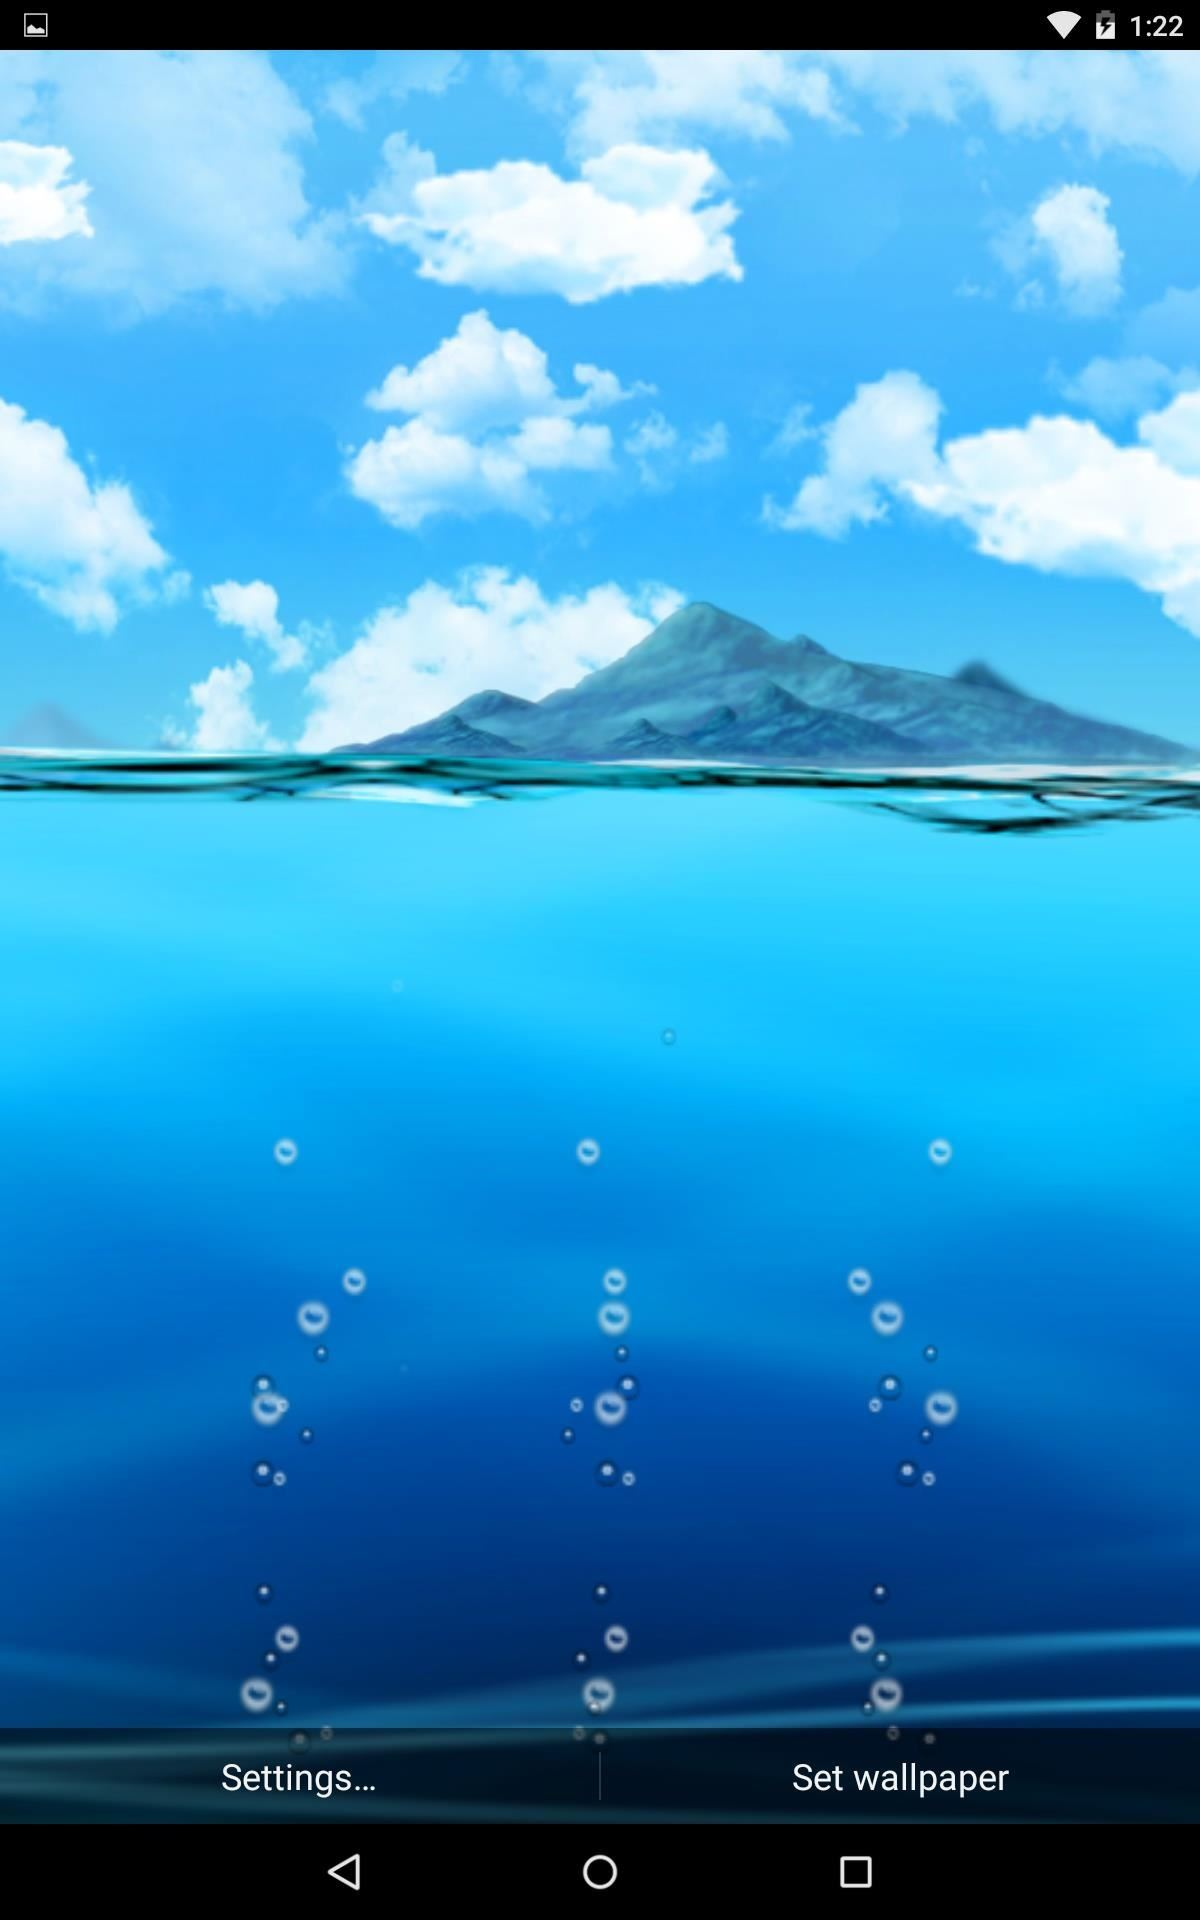 also included in this menu is a previous asus live wallpaper called asus livewater which includes various water animations and the ability to set your own